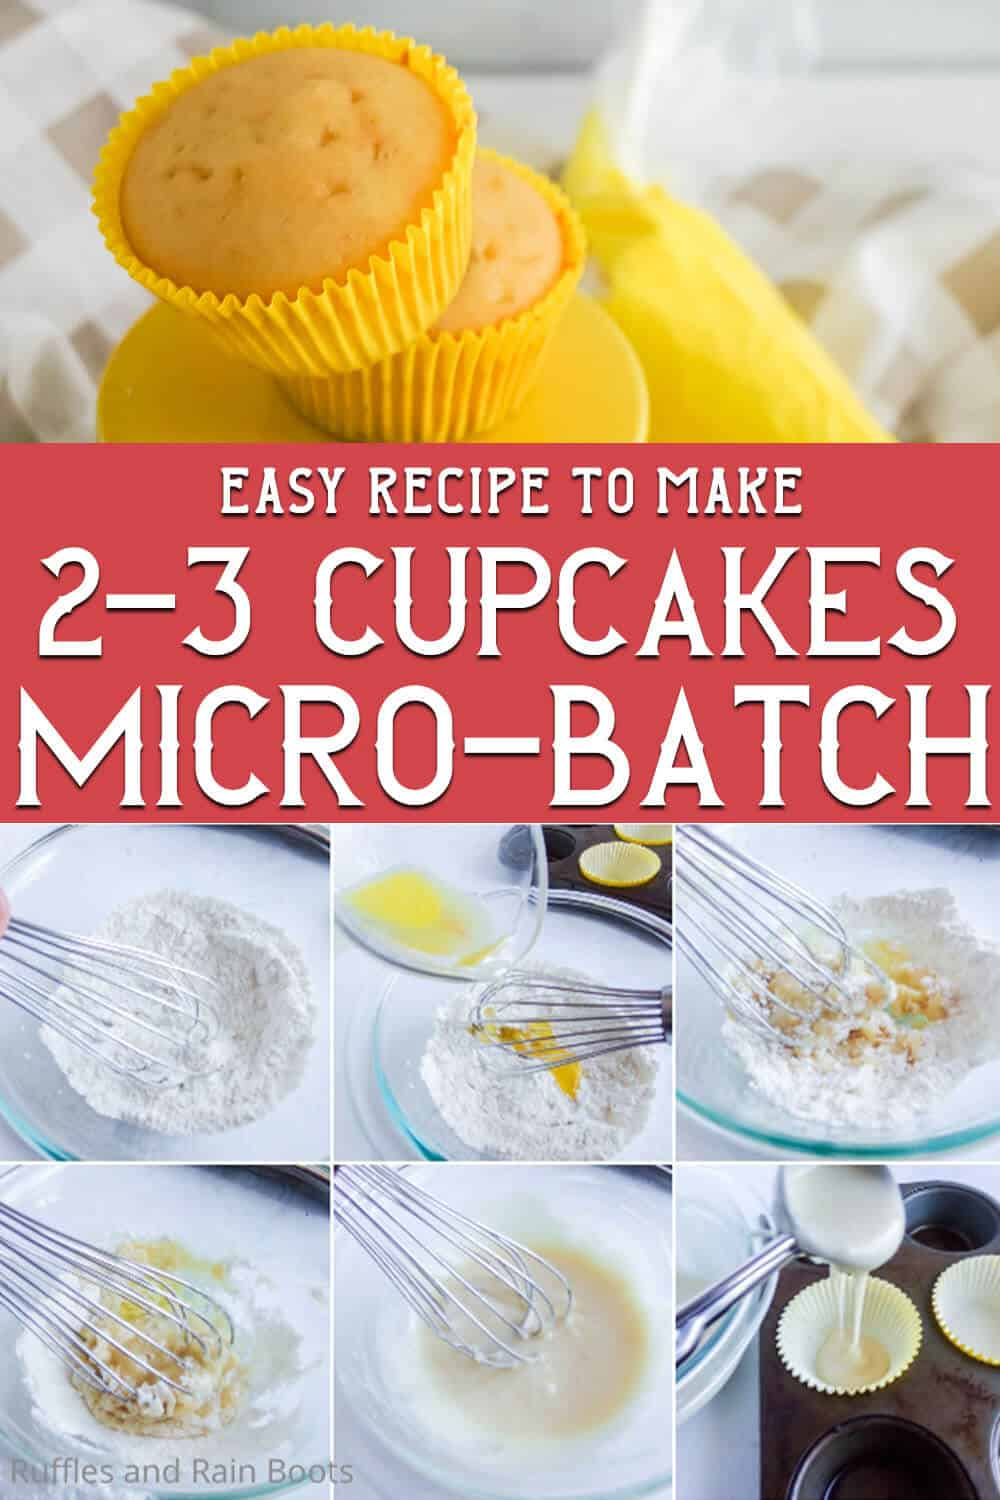 photo collage of easy cupcakes for two with text which reads easy recipe to make 2-3 cupcakes micro-batch